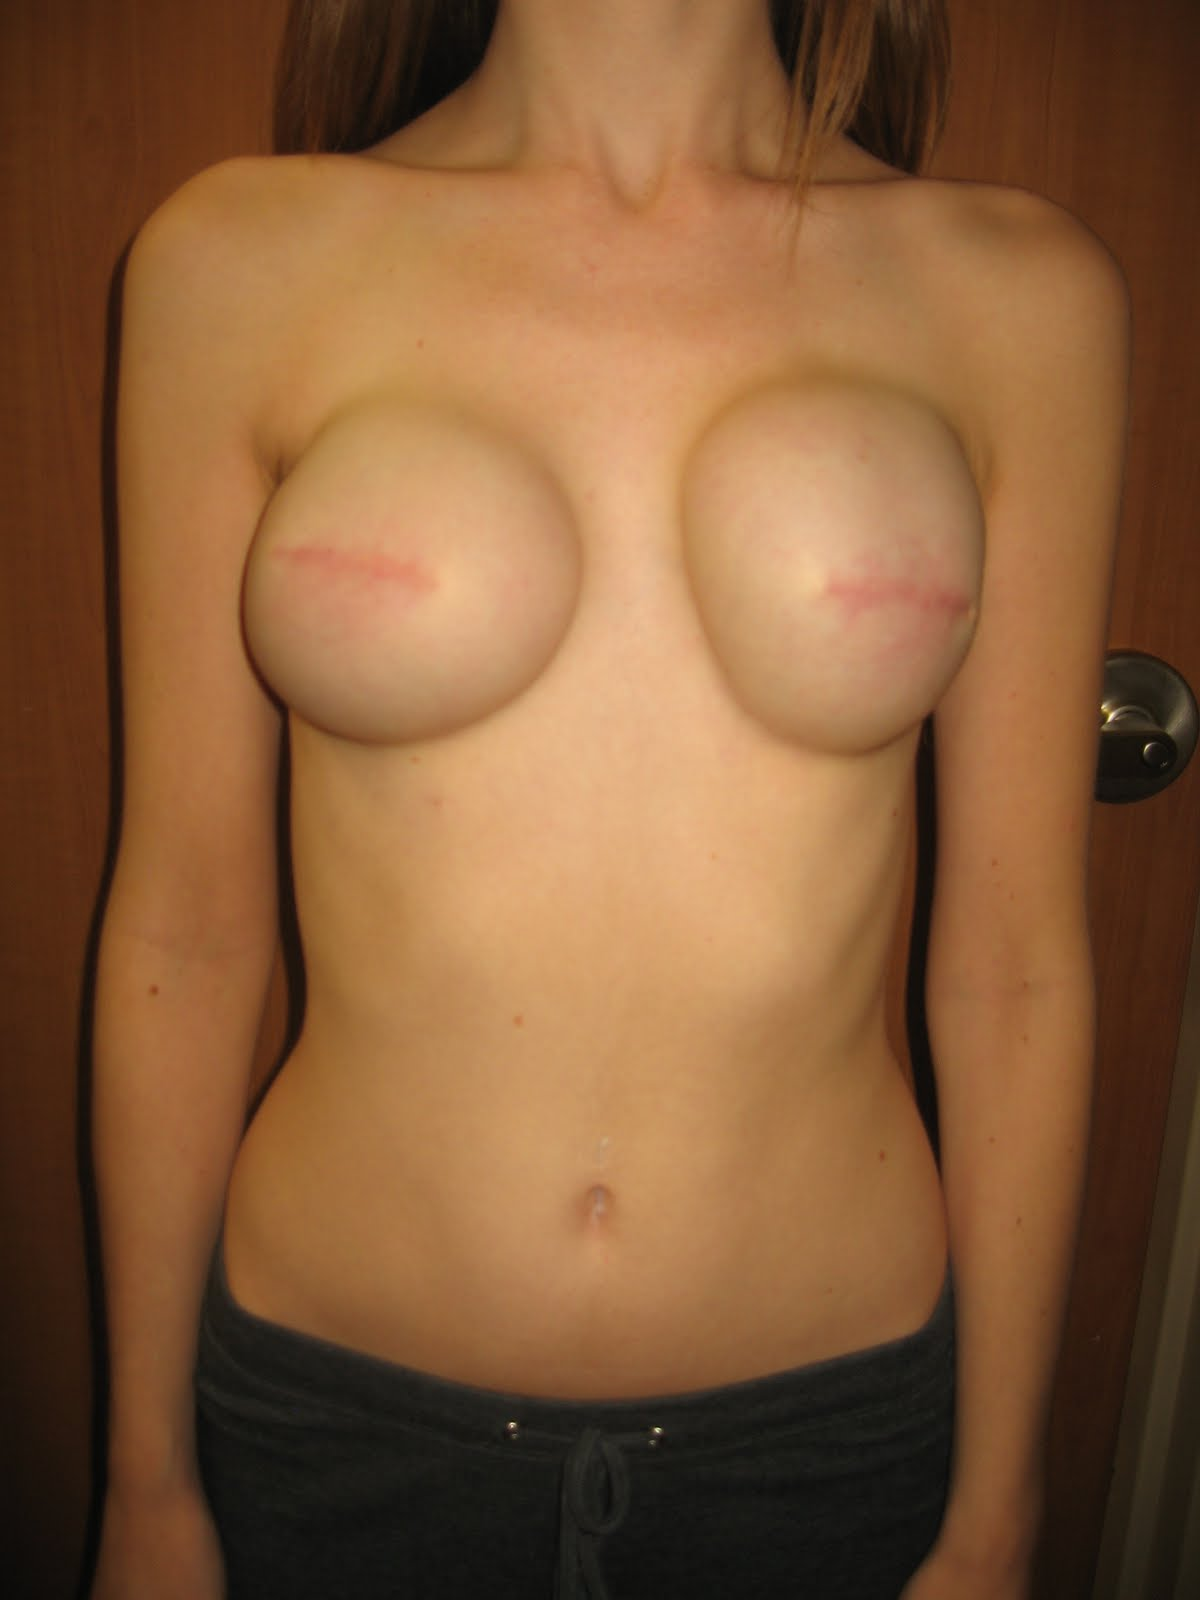 naked girl with breast implants